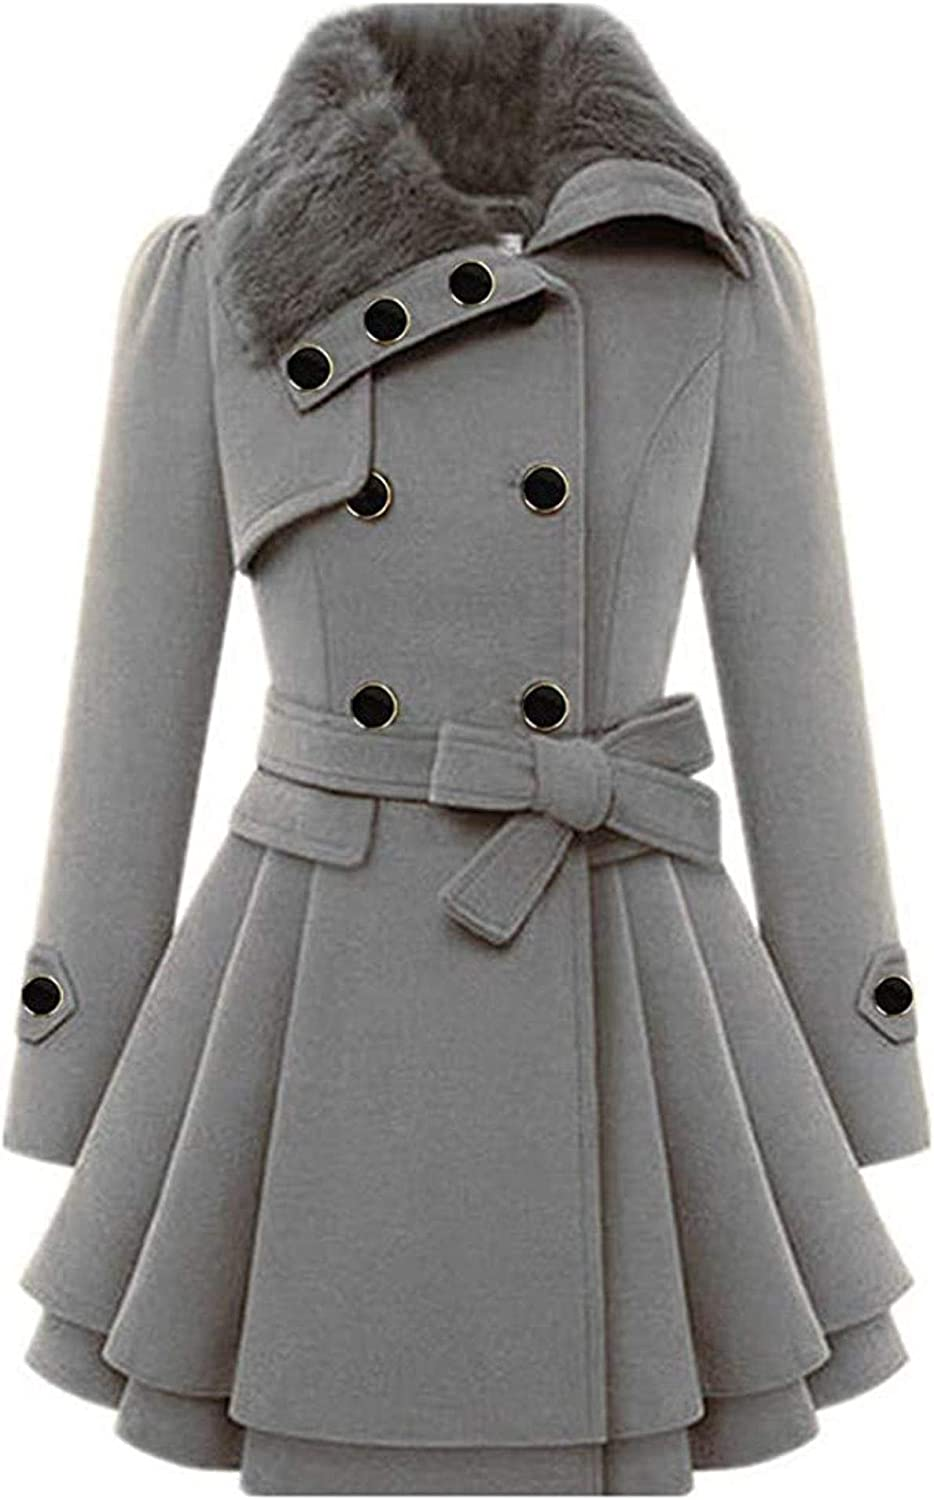 Women's Faux Fur Lapel Double-Breasted Thick Wool Trench Coat Rain Jacket Button Outdoor Windbreaker with Belts